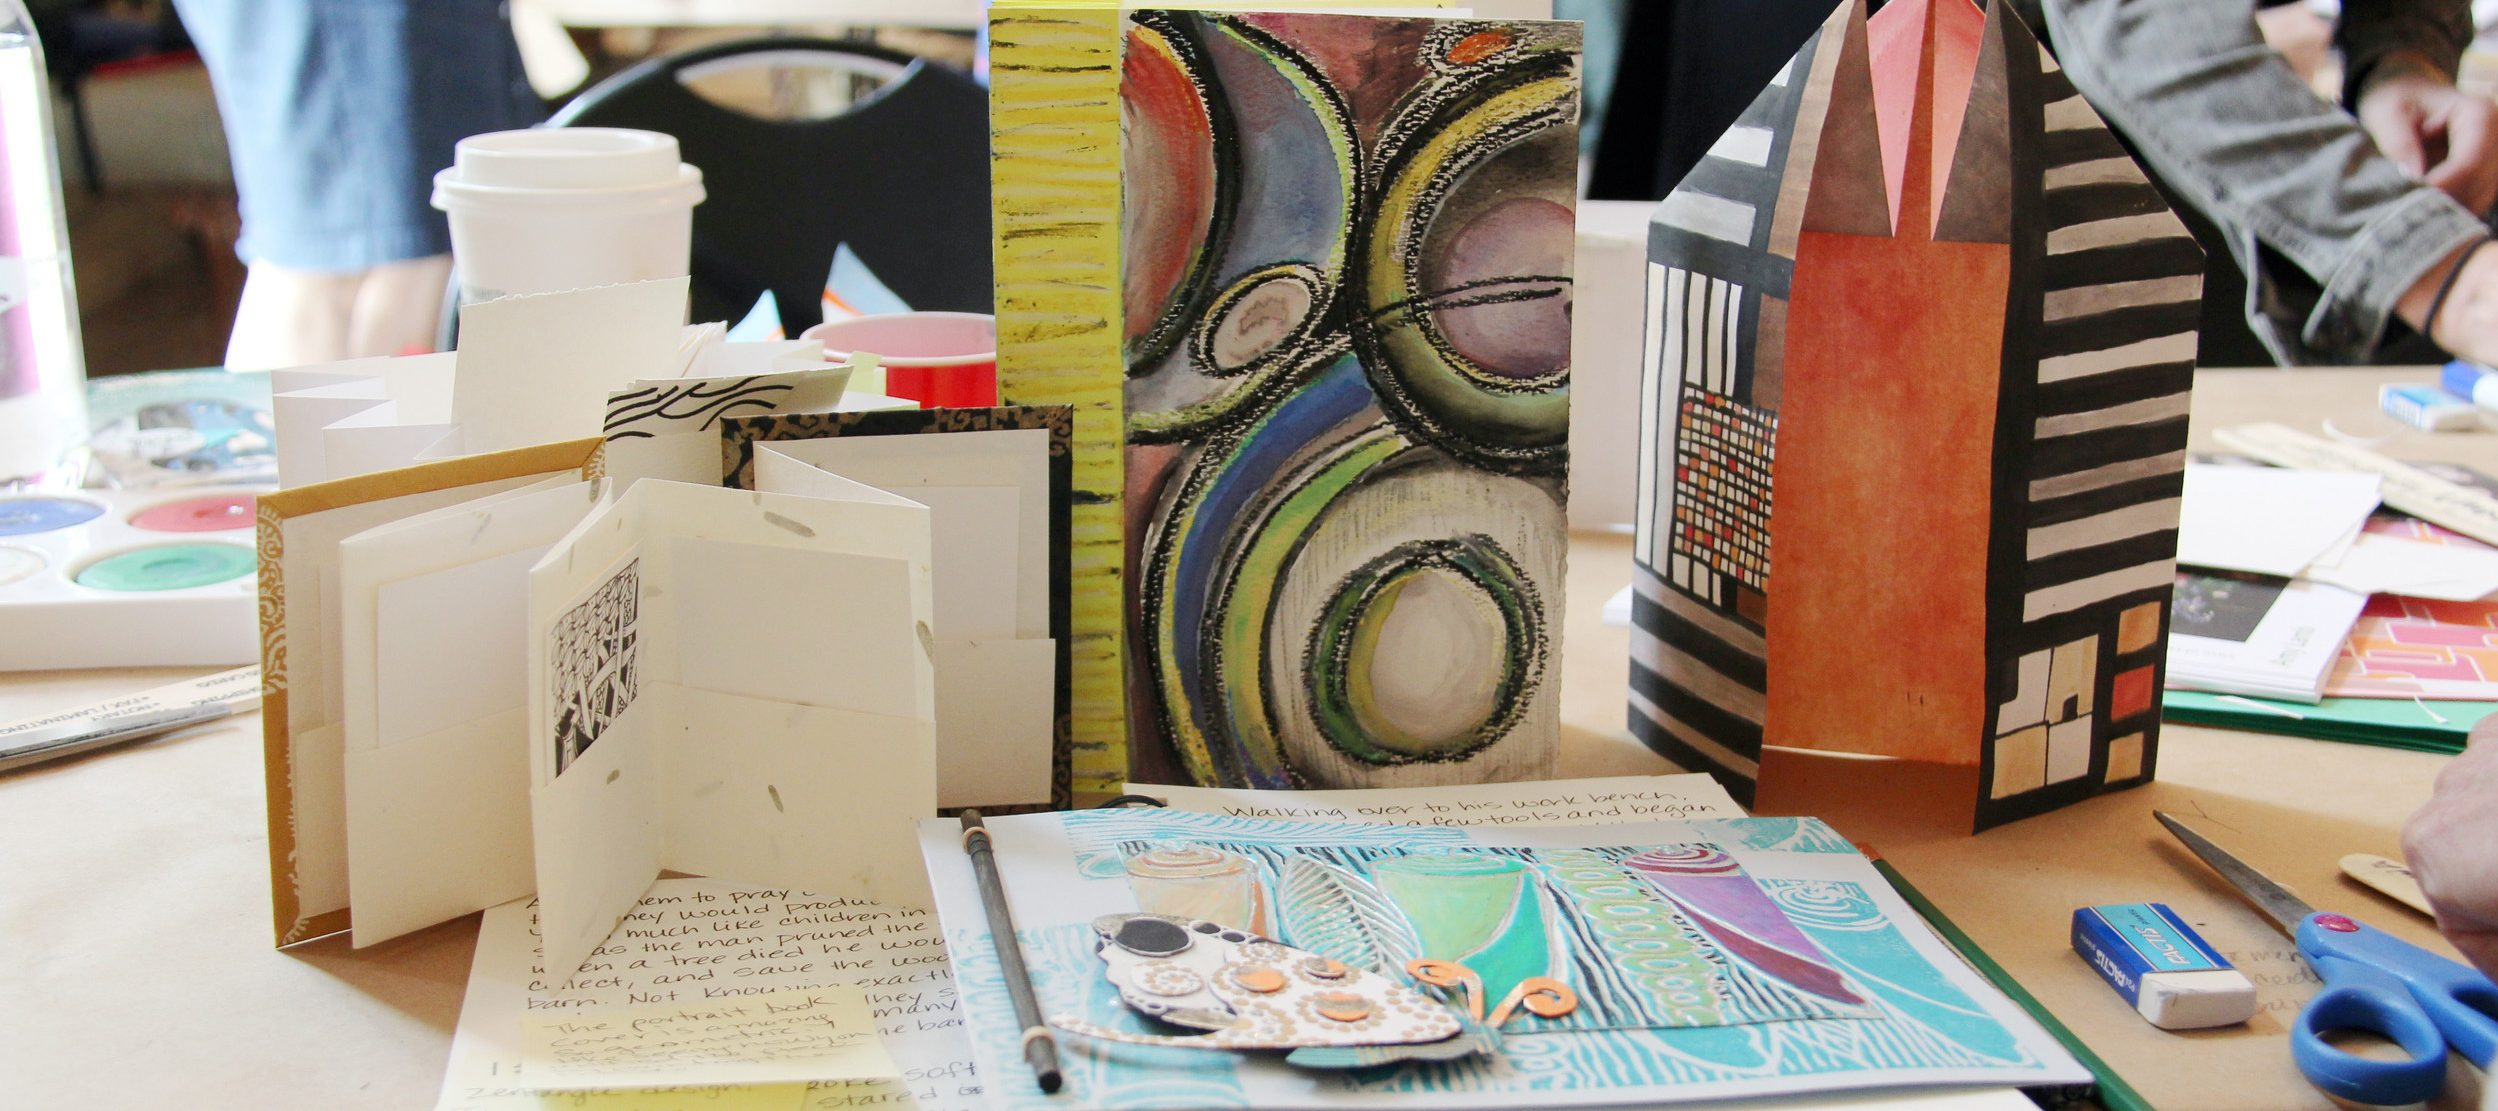 An assortment of artist books with various paper folds and artworks.